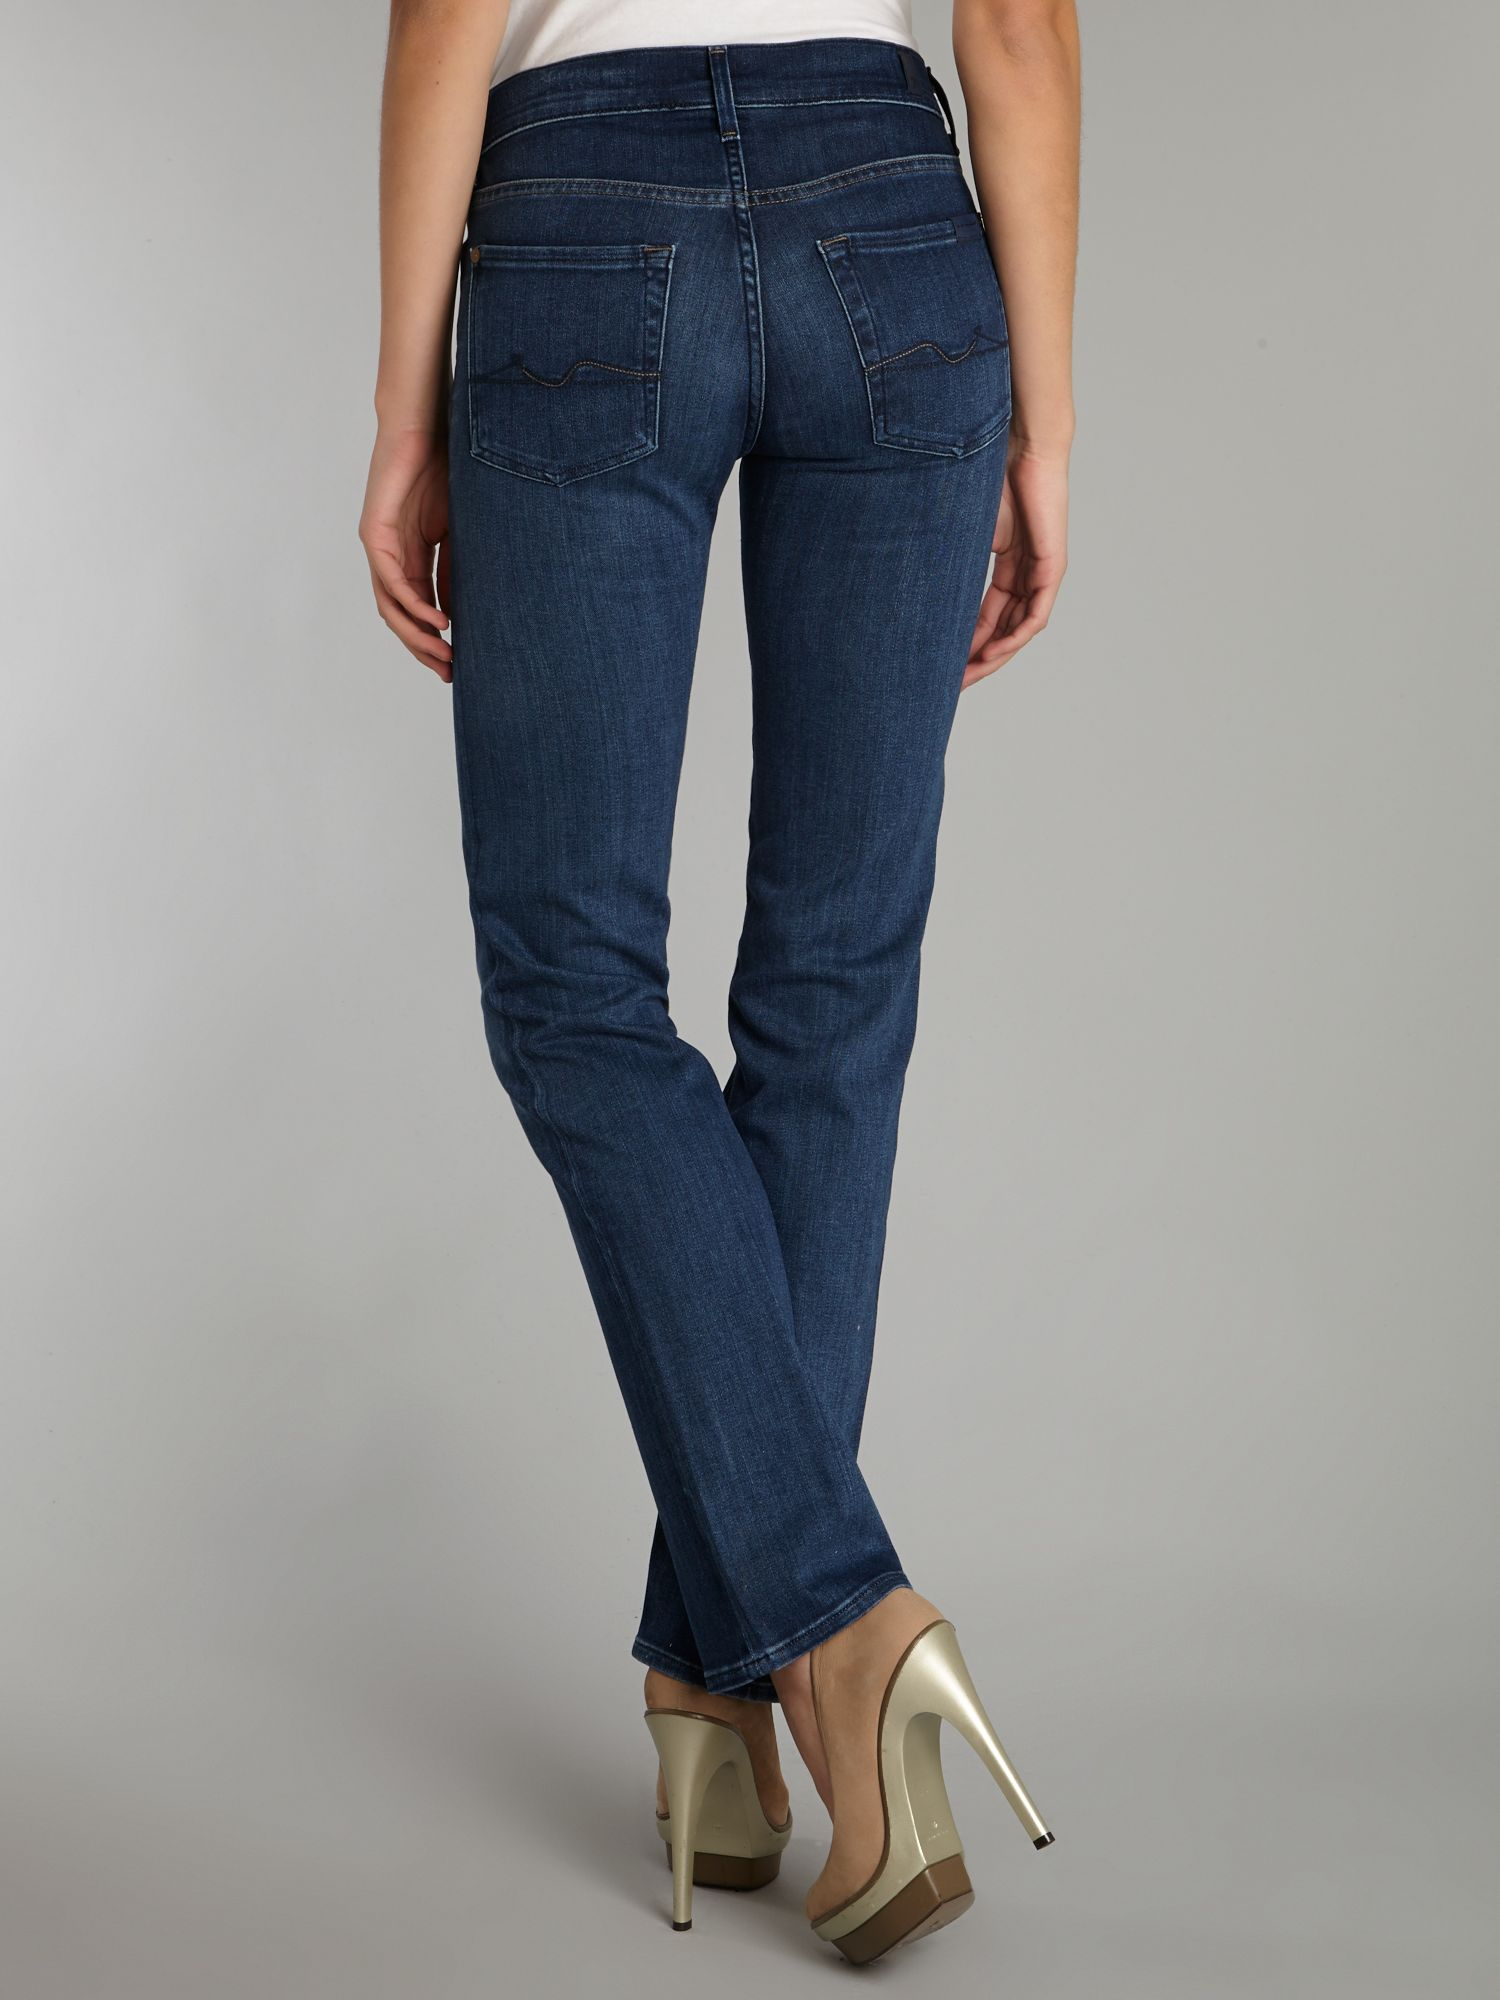 7 for all mankind High Waist Straight Leg Jeans in Pacific Shadows ...